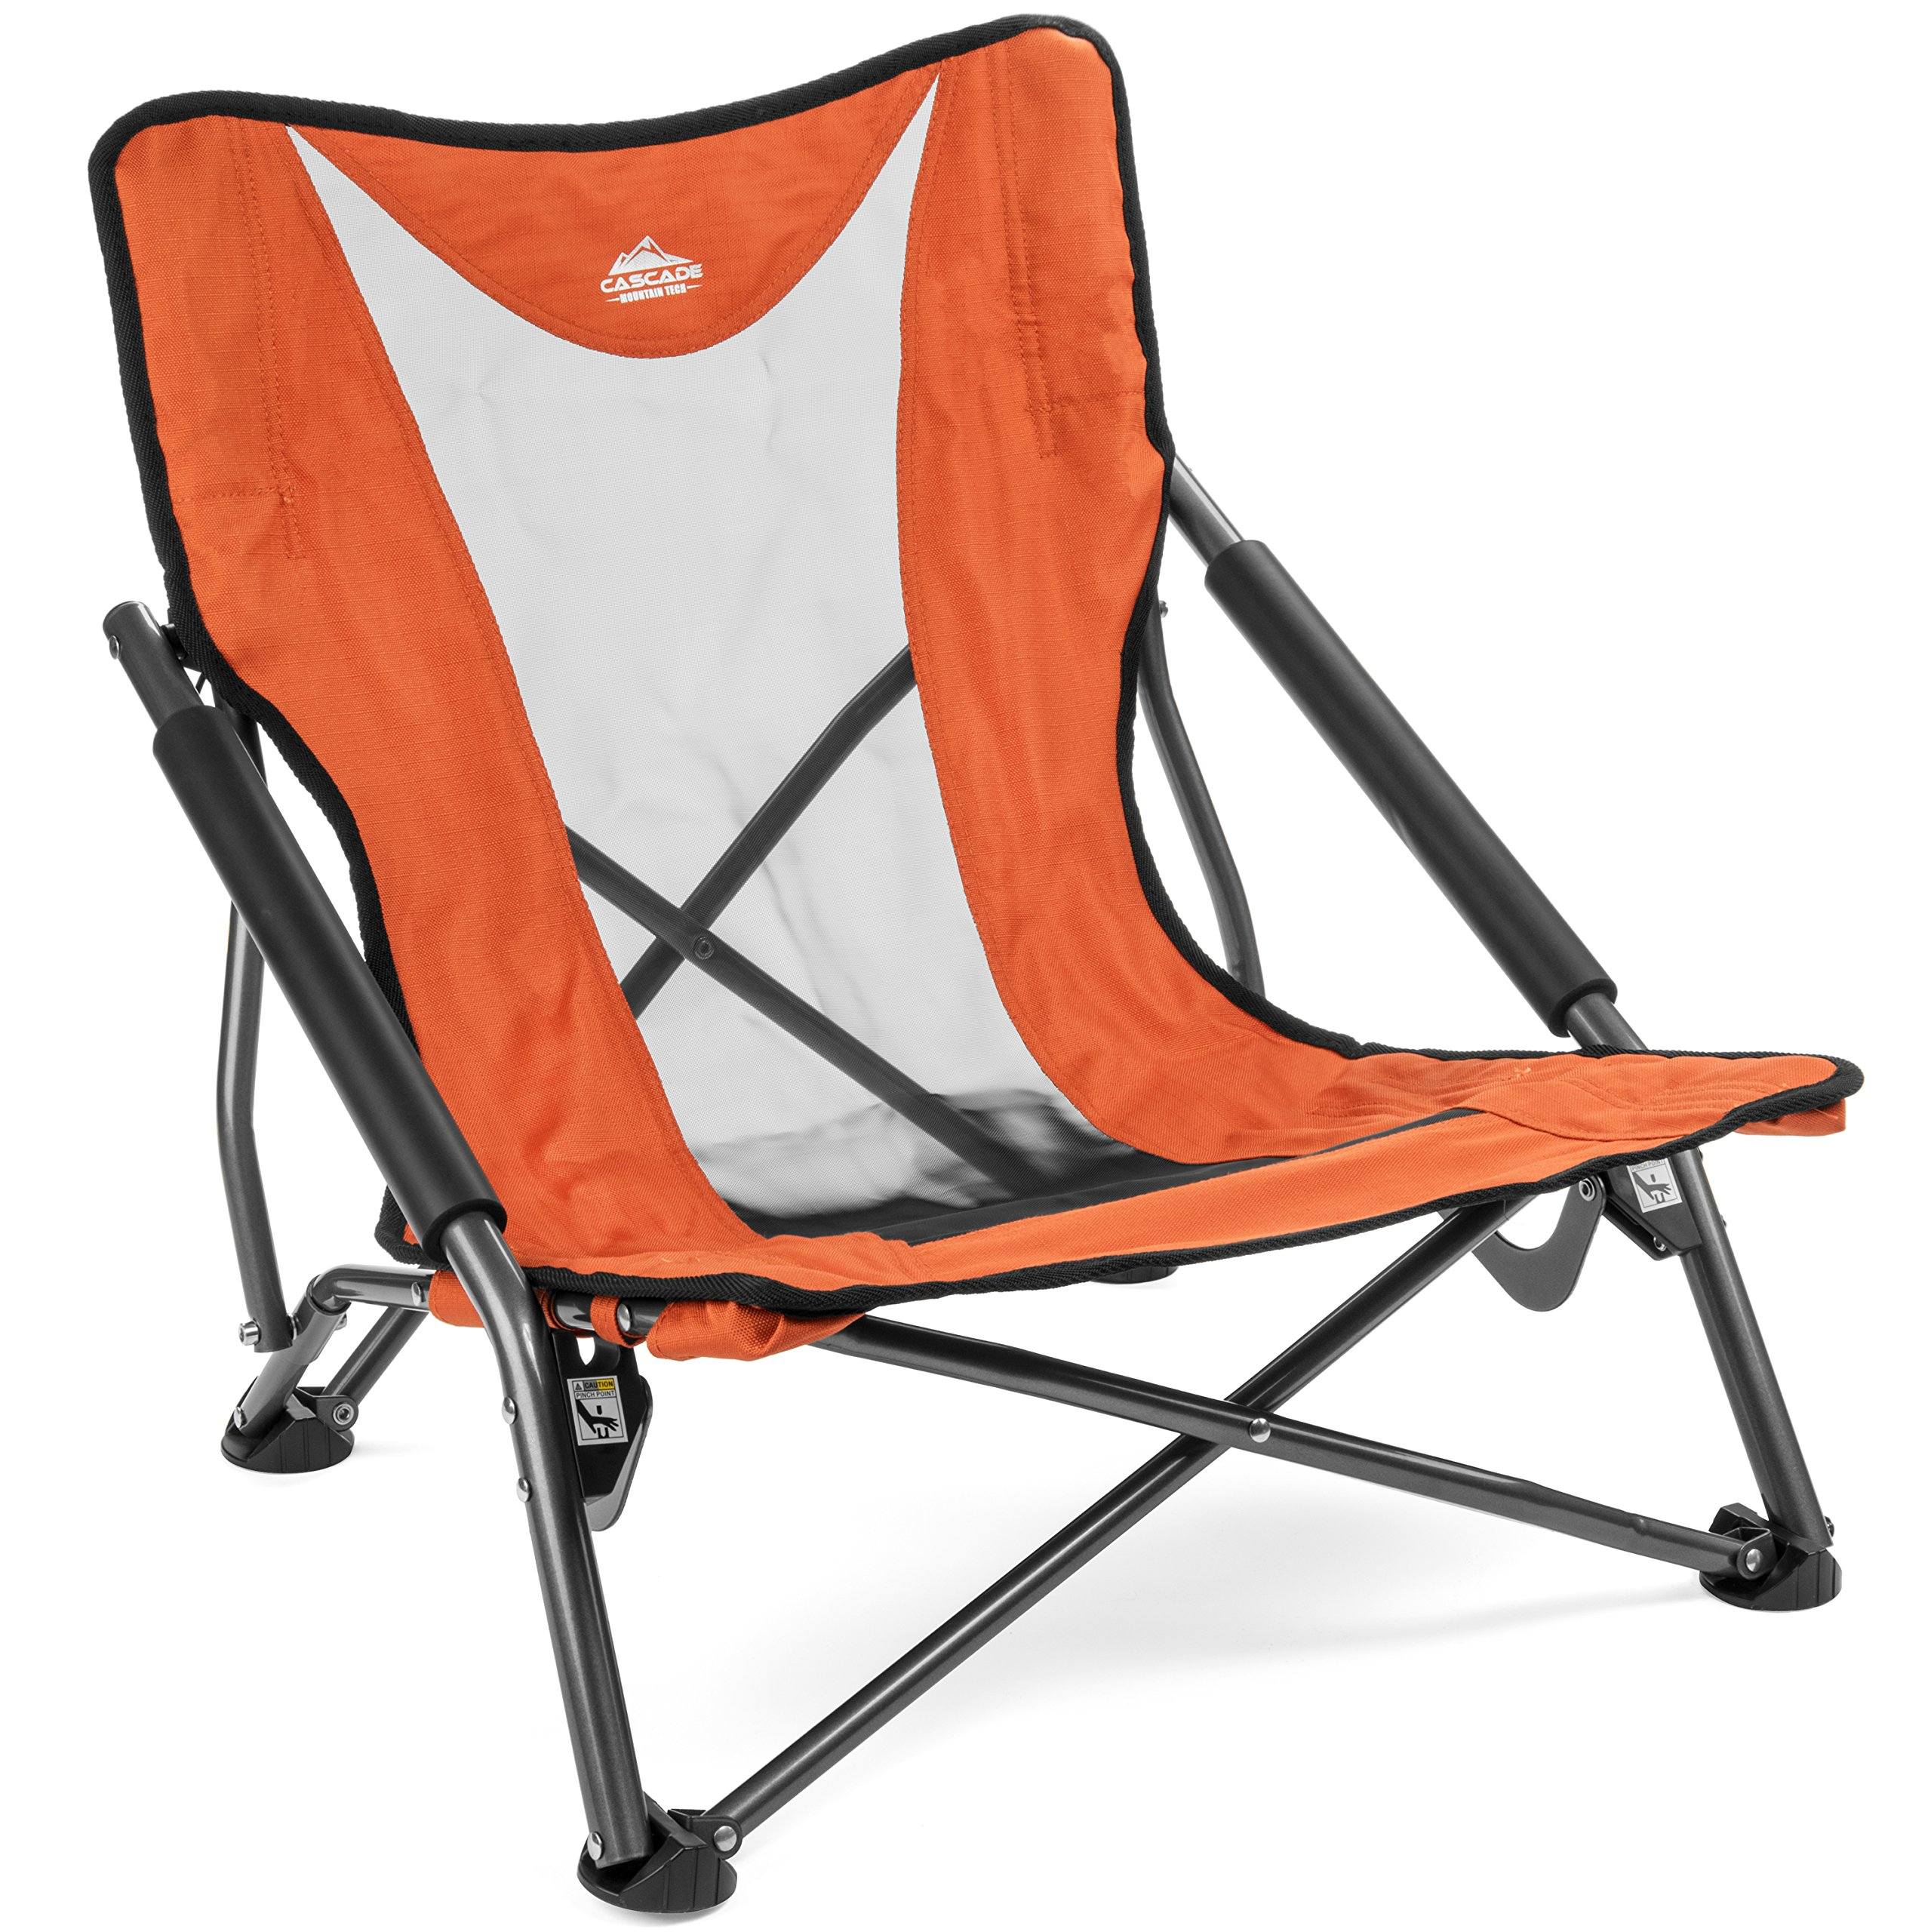 Cascade Mountain Tech Compact Low Profile Outdoor Folding Camp Chair with Carry Case - Orange by Cascade Mountain Tech